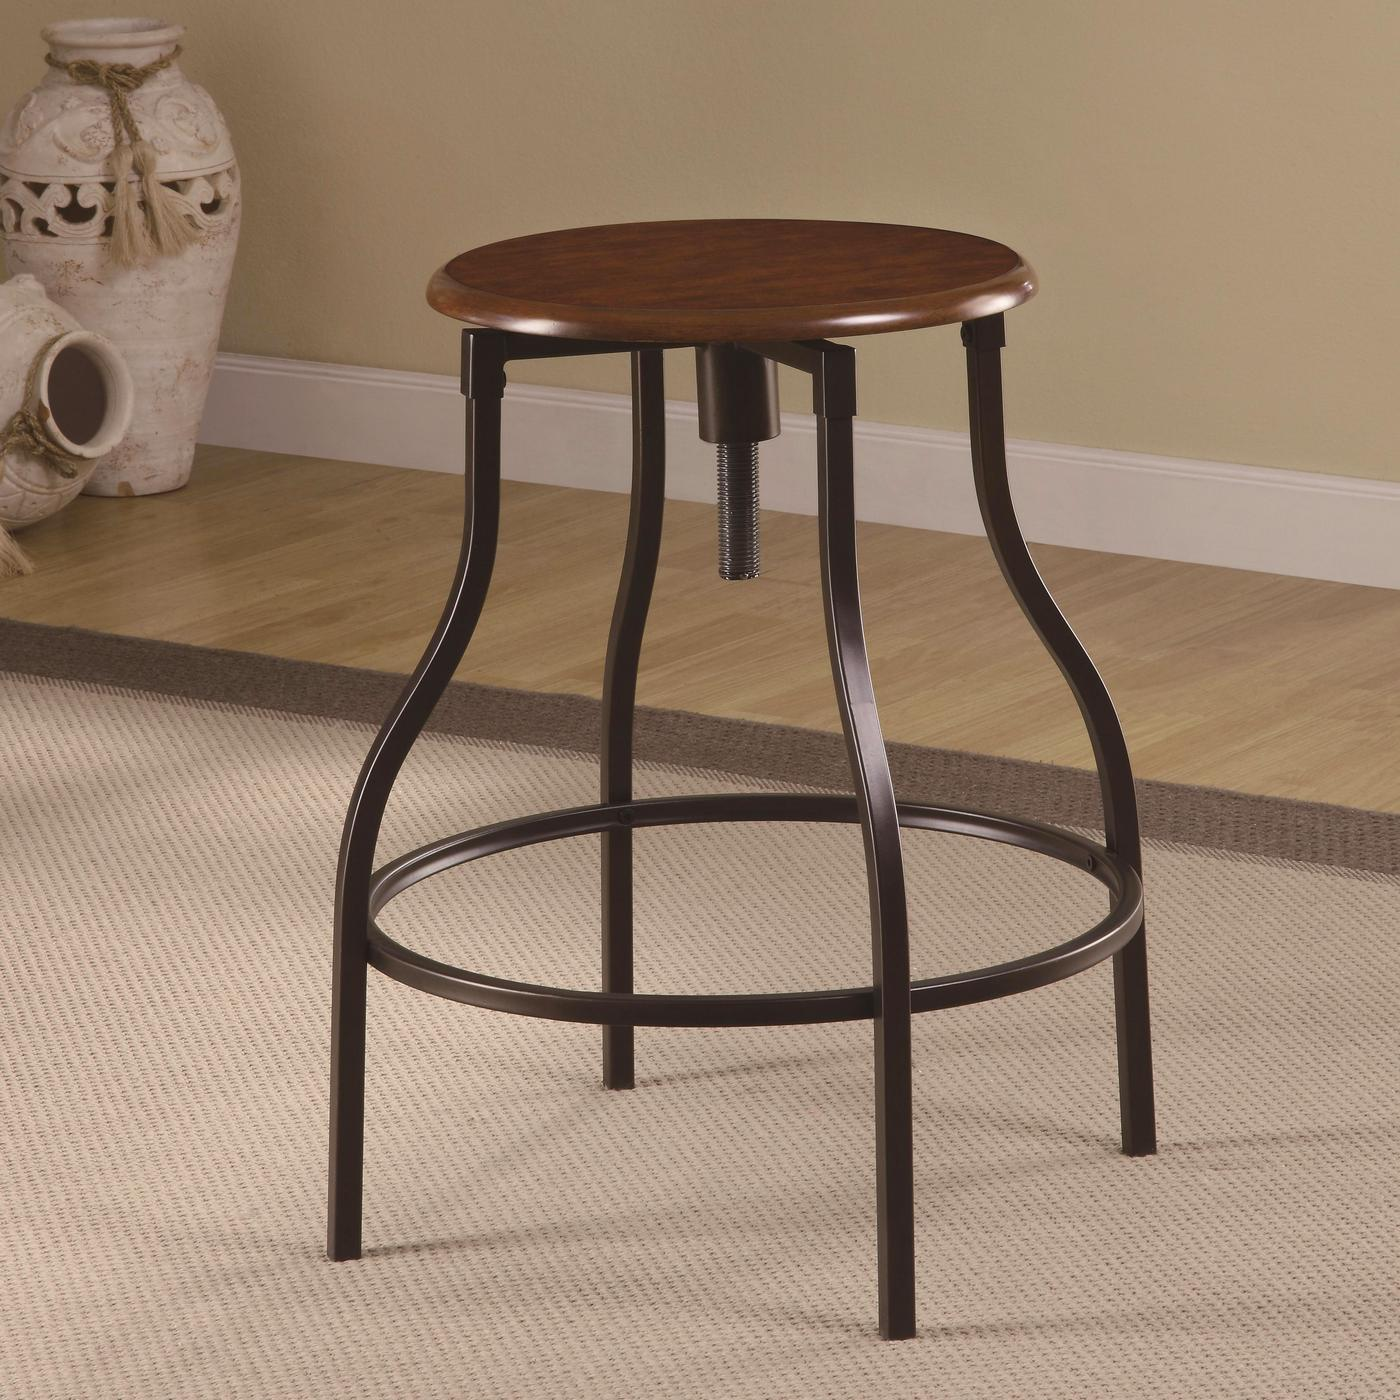 Contemporary Bar Stools Contemporary Adjustable Black Metal Leg Bar Stool